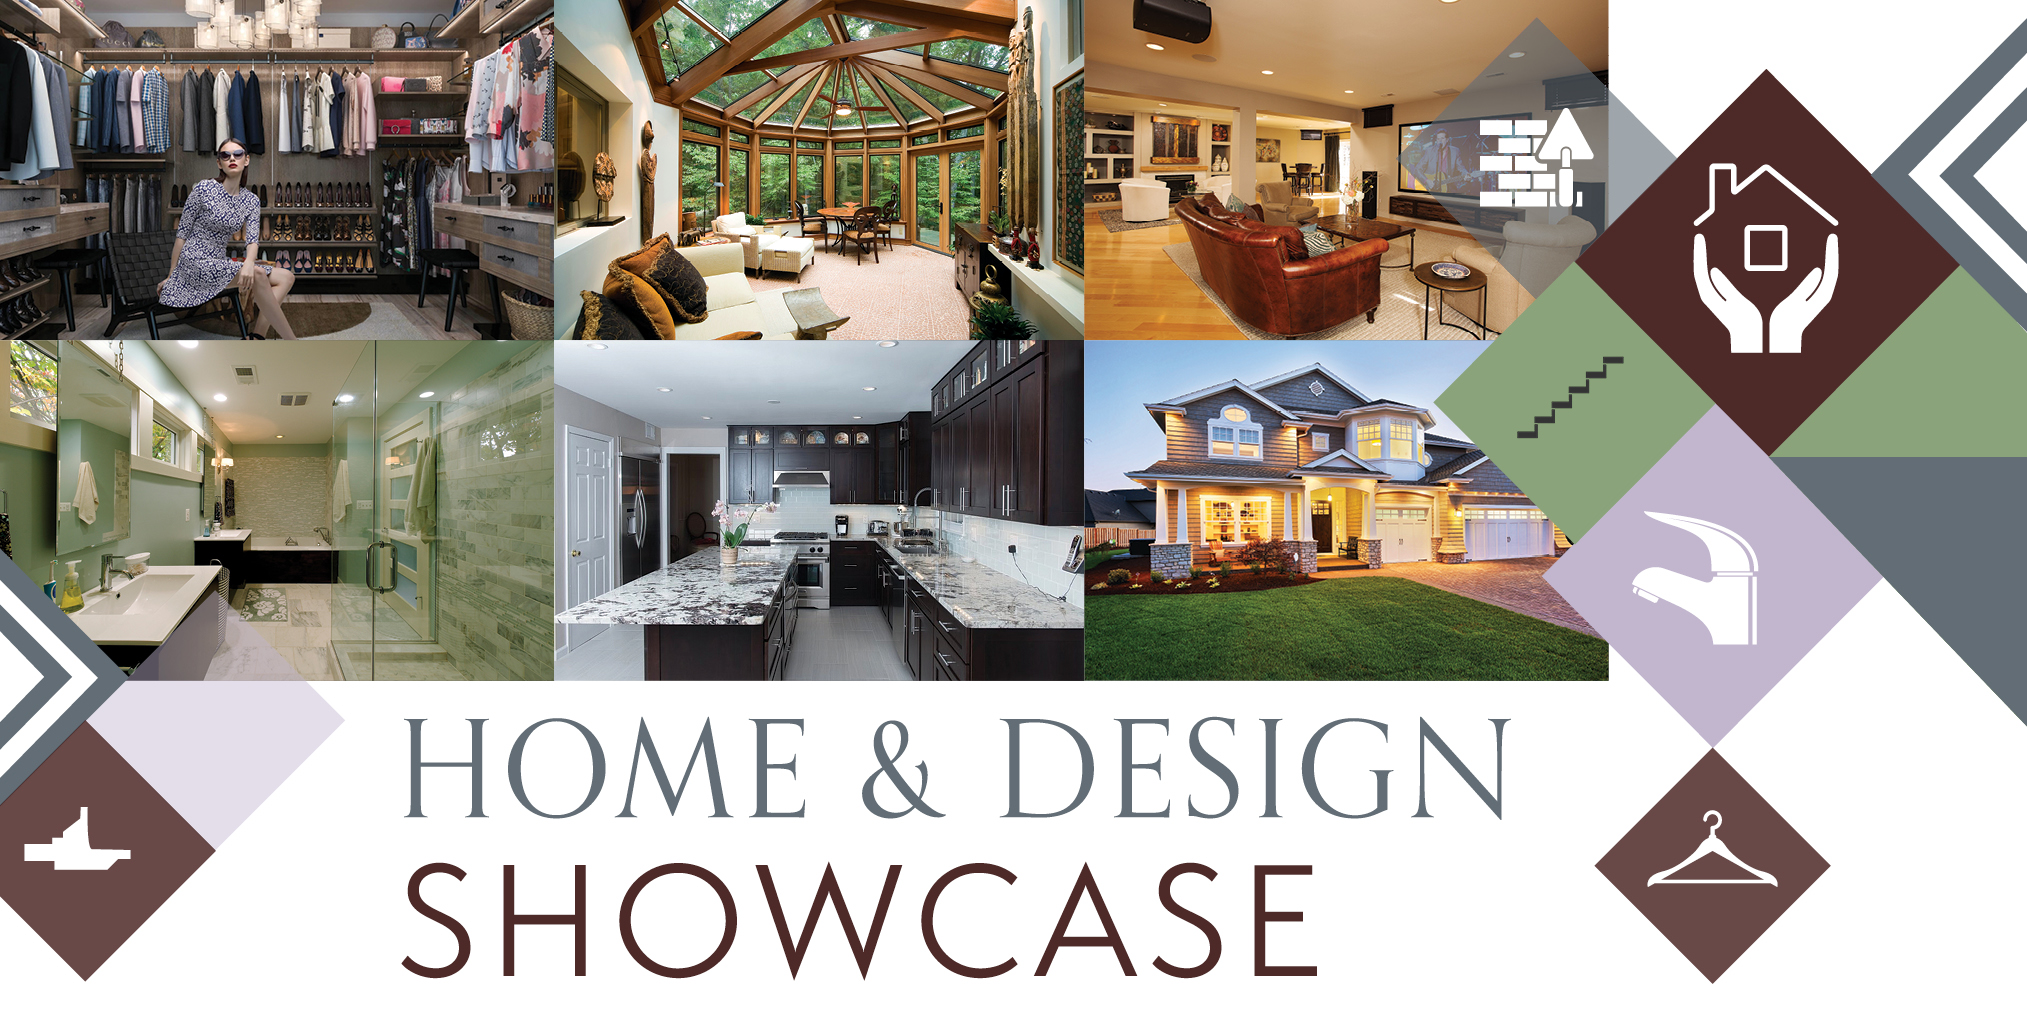 Home and Design Showcase